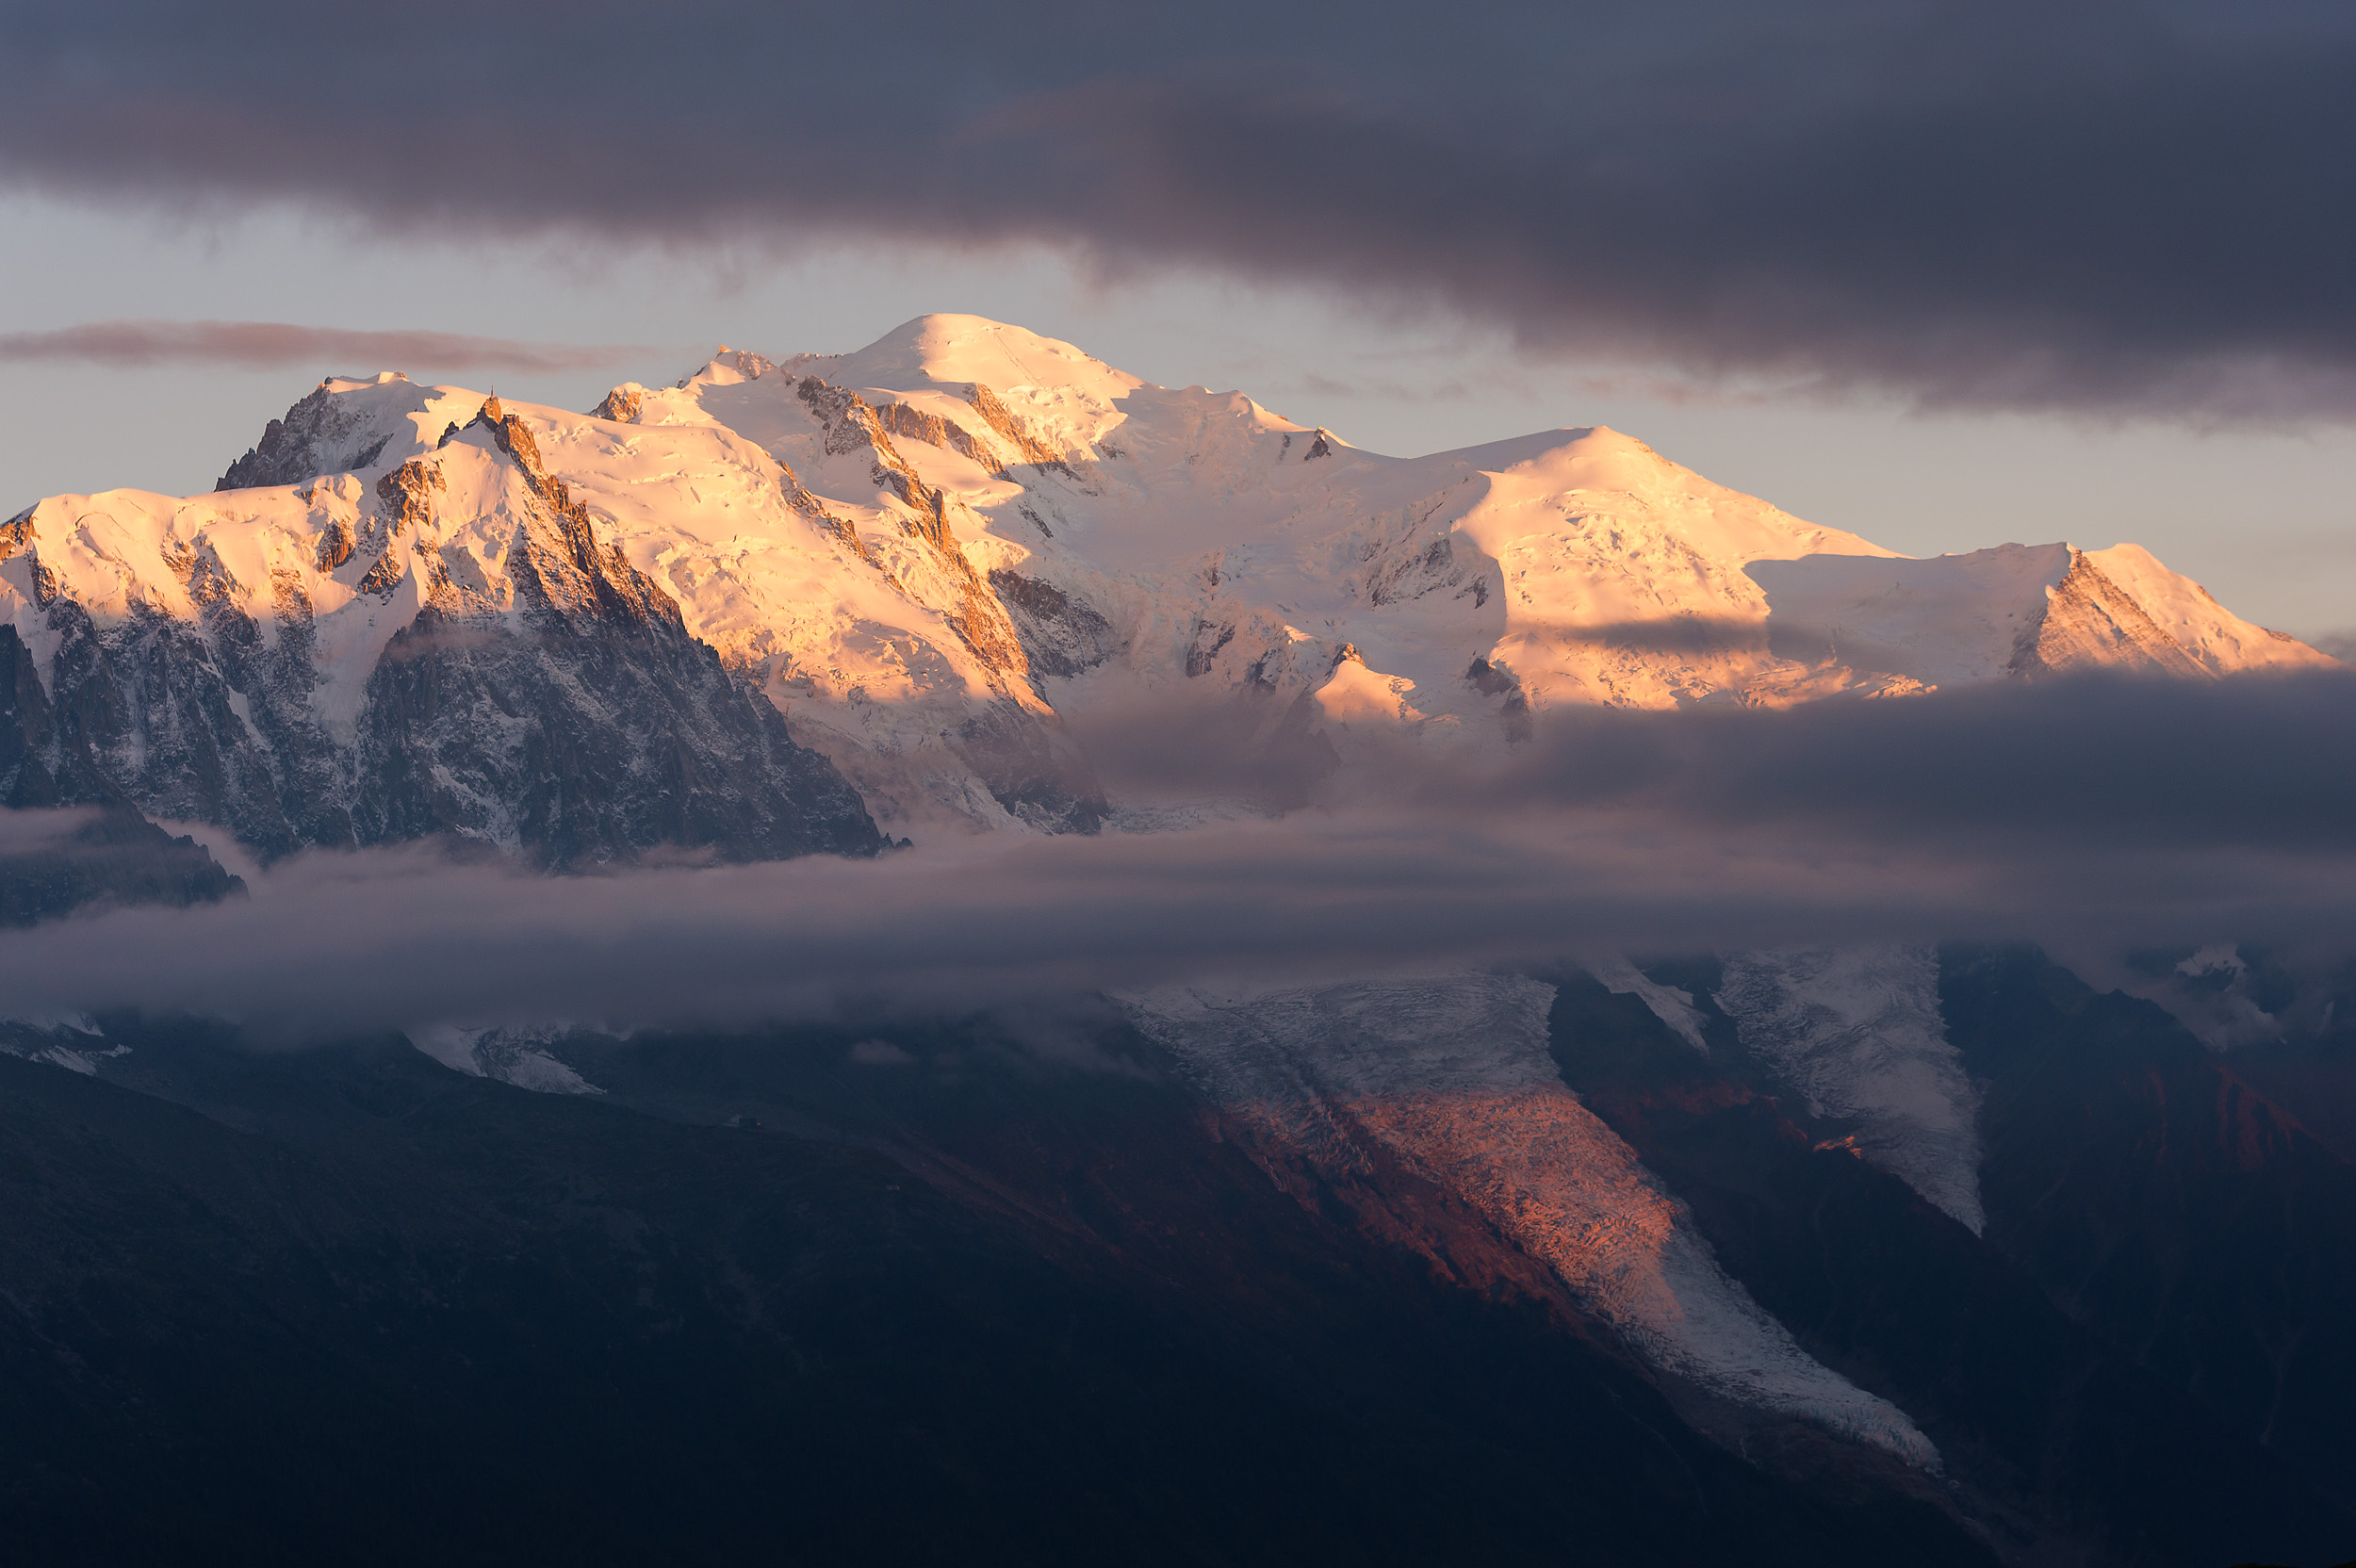 The sun setting on Mont Blanc, Europe's highest mountain, above Chamonix, France.